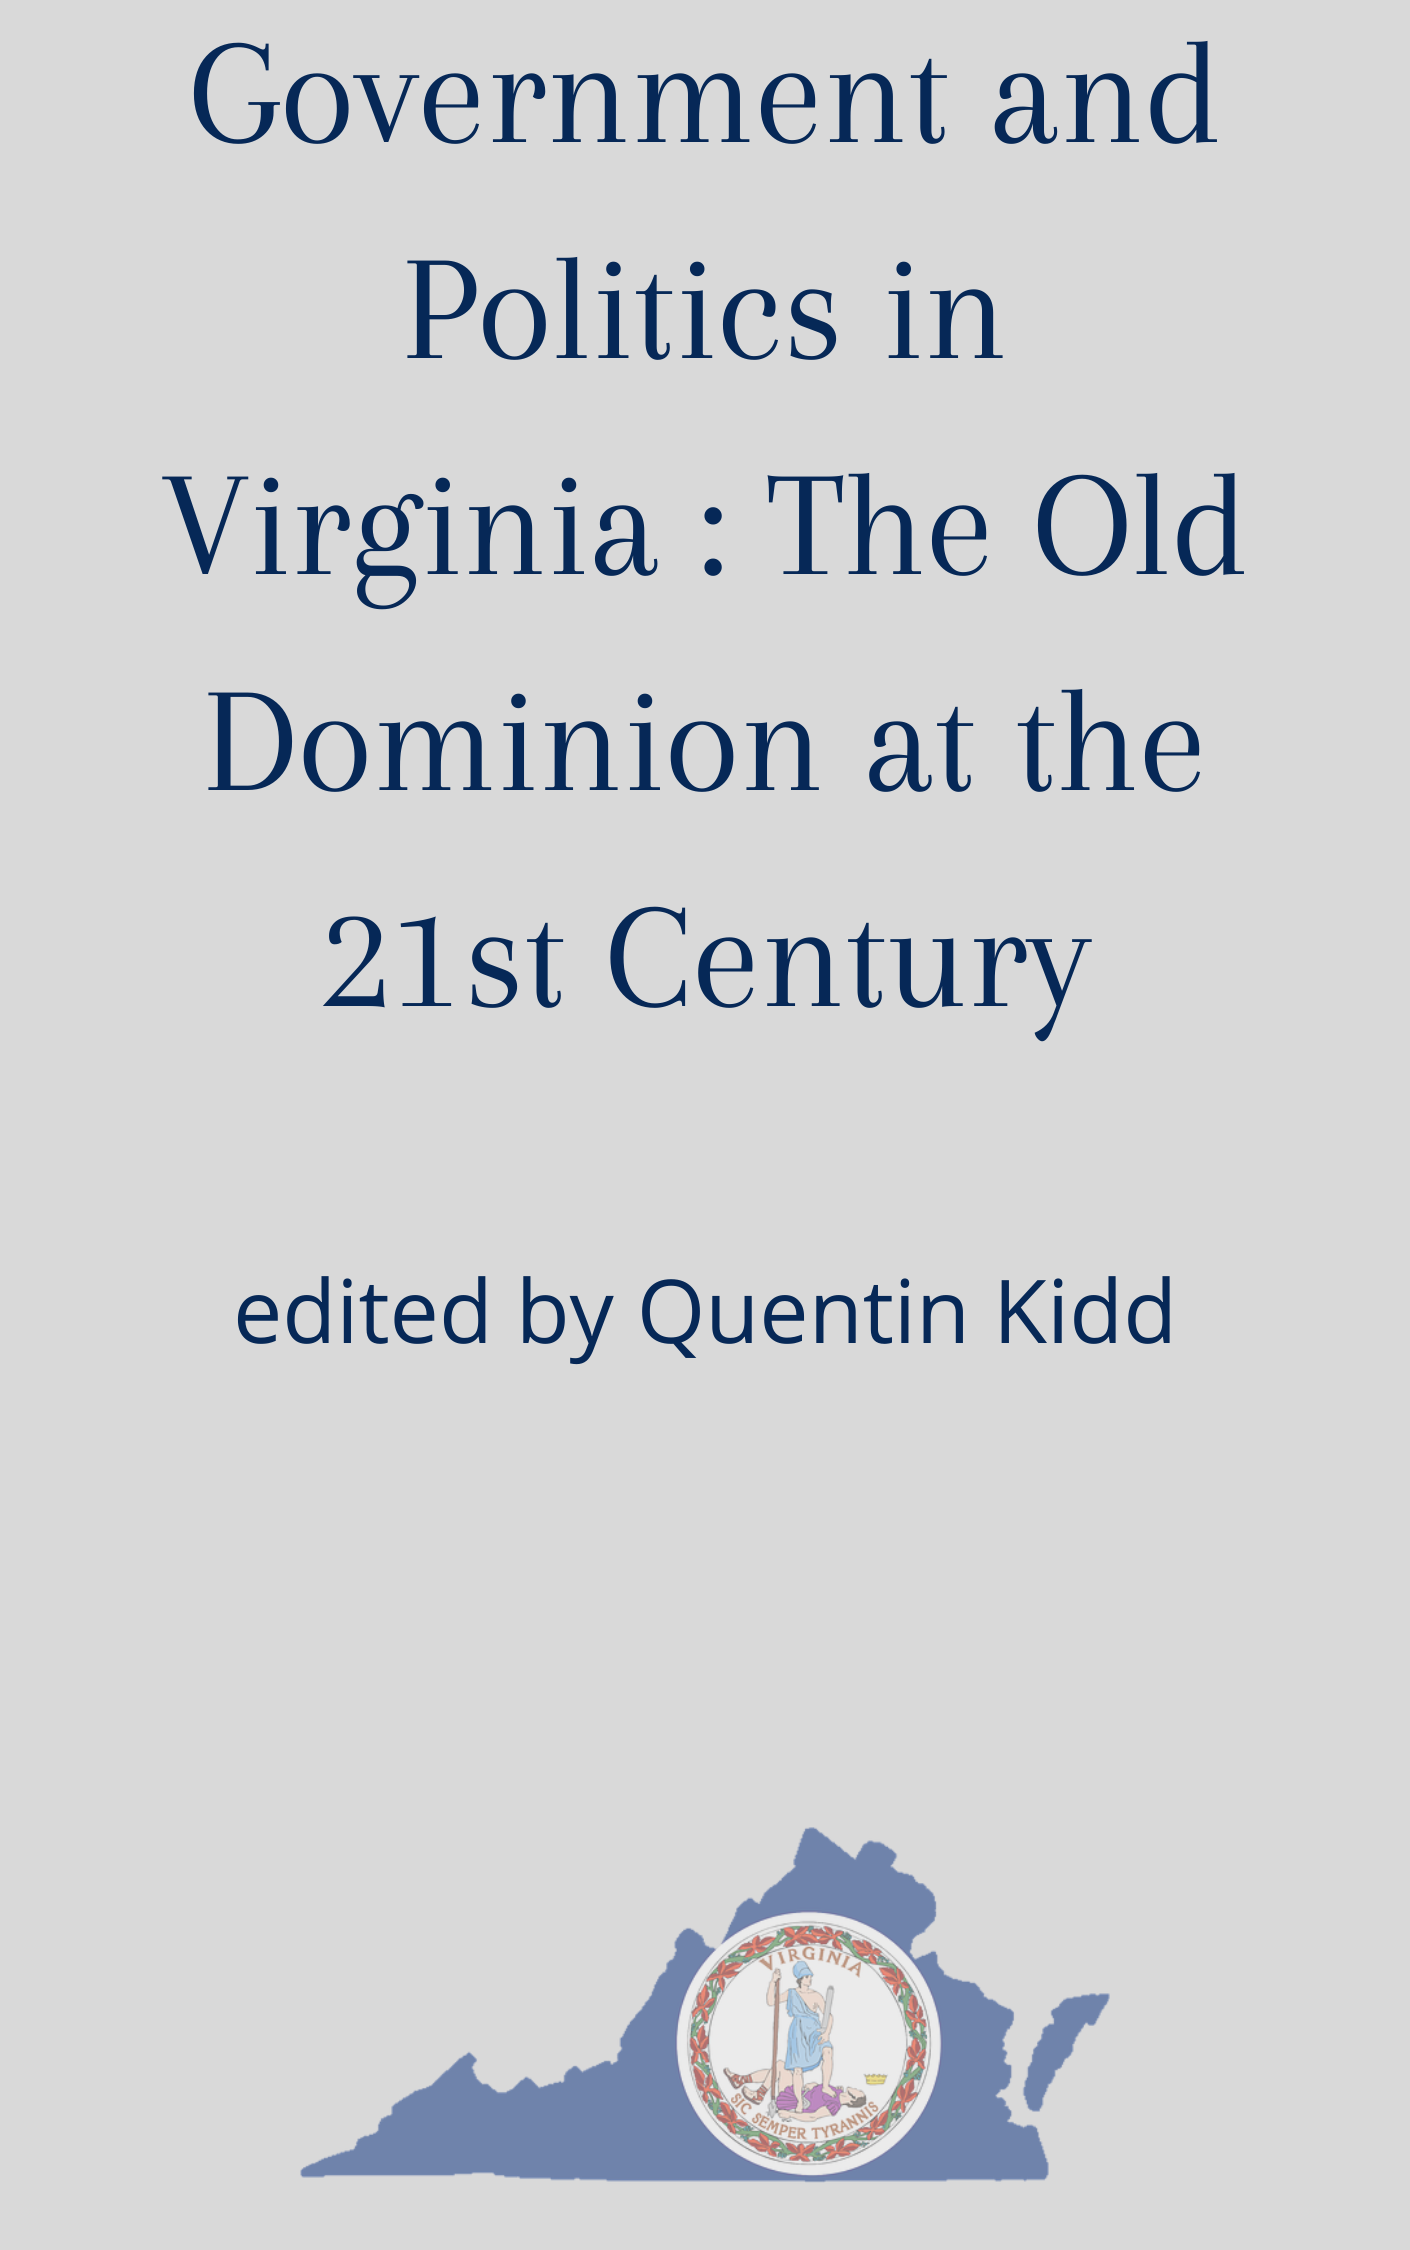 Government and Politics in Virginia: The Old Dominion at the 21st Century